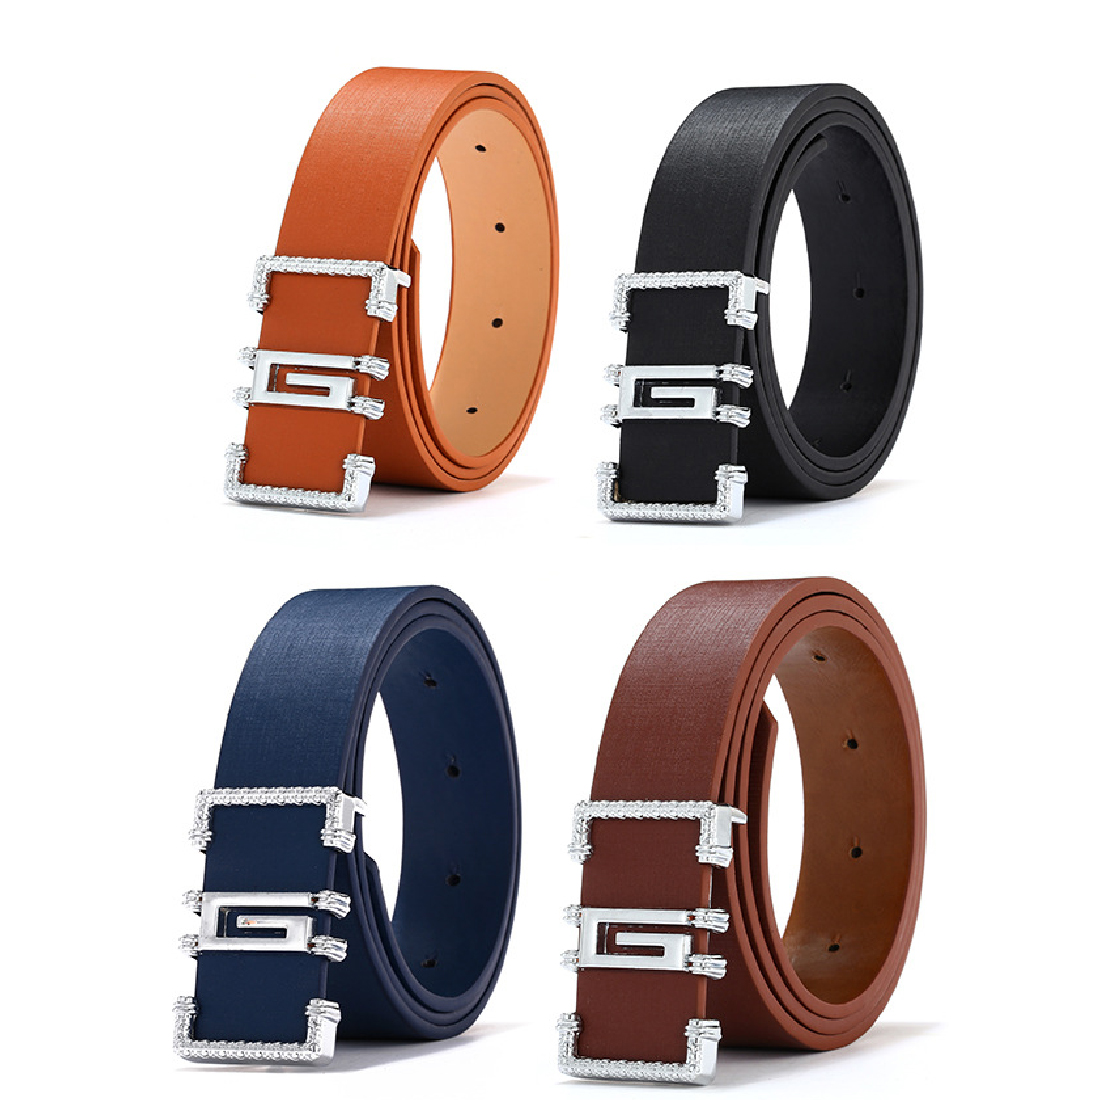 Men/'s Genuine Leather Belts Designer High Quality Smooth Leather Buckle Leisure